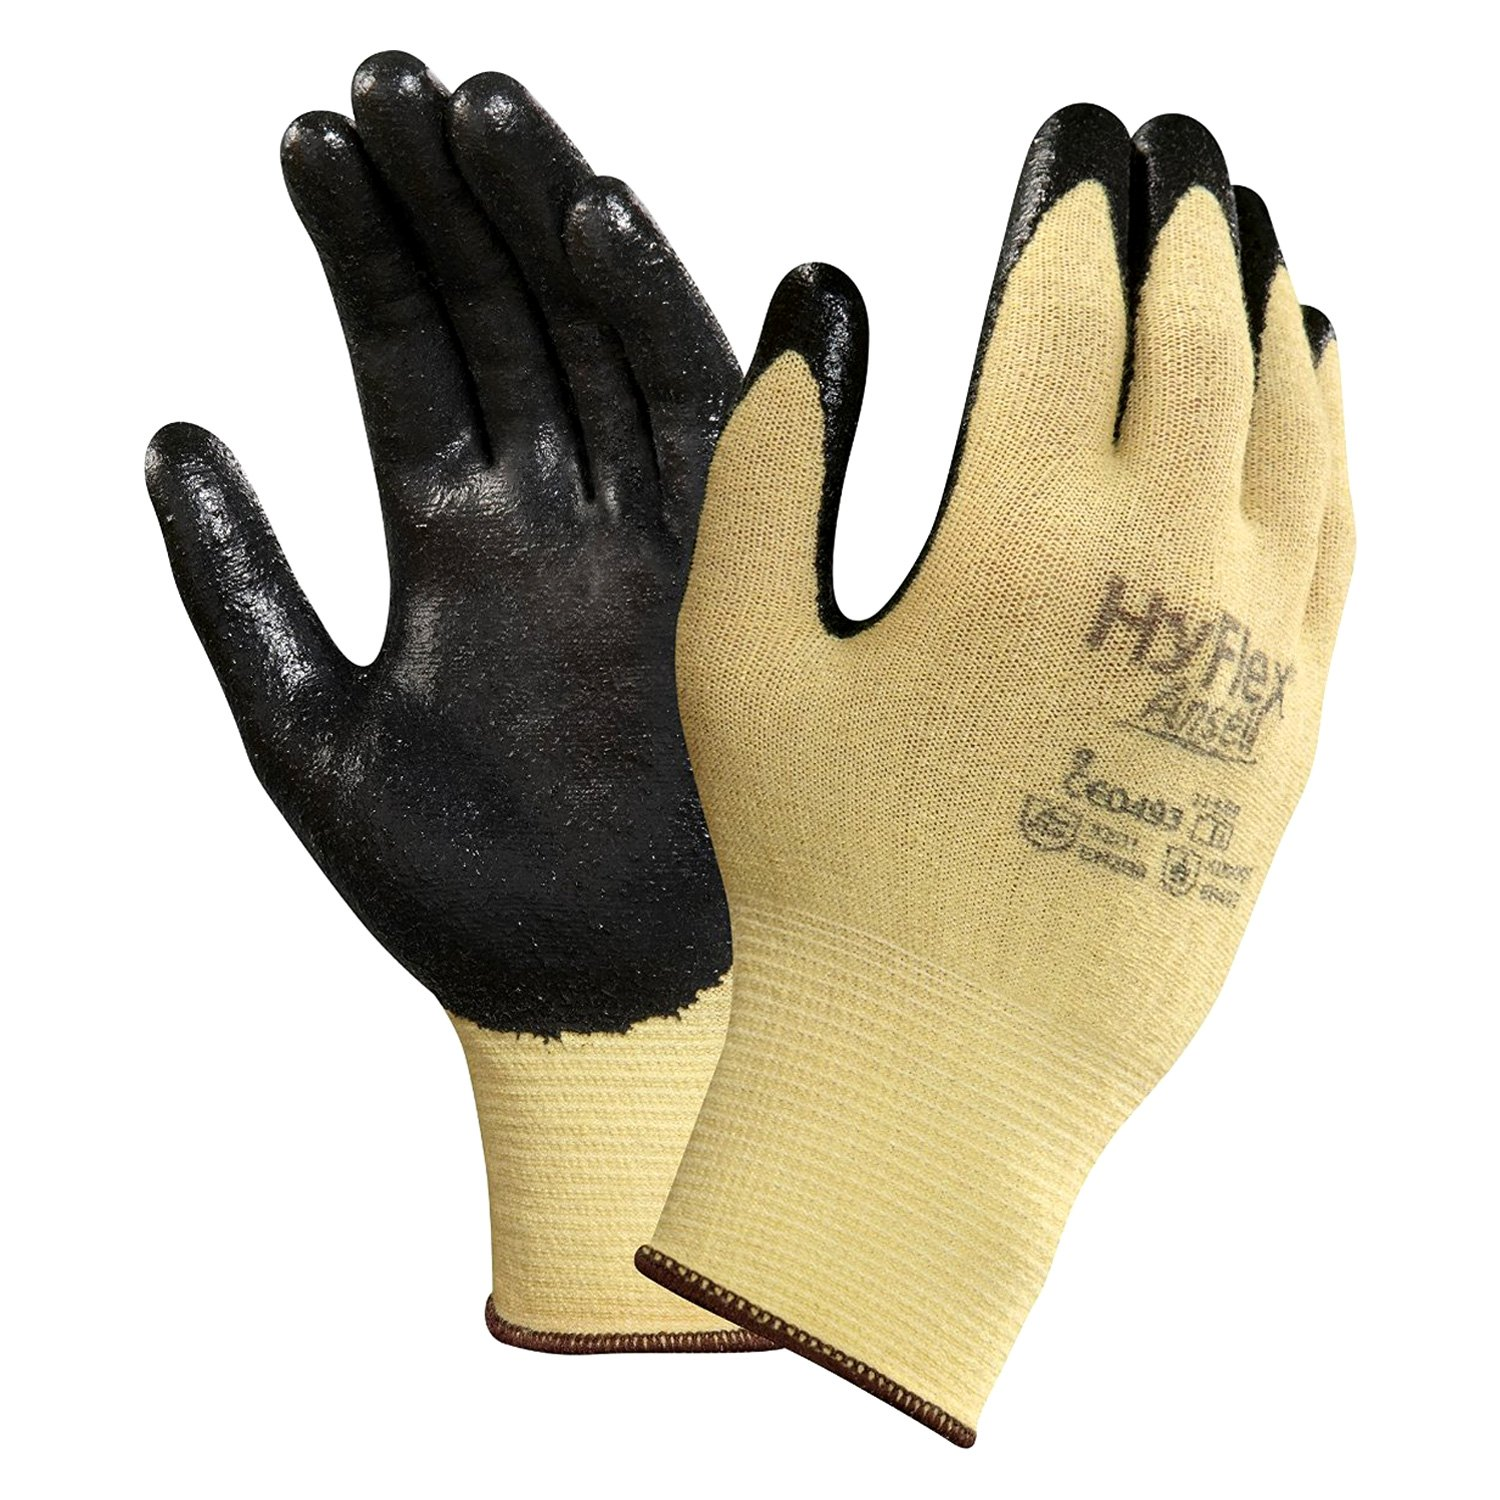 Ansell 103338 hyflex dupont kevlar gloves for Dupont exterior protection reviews